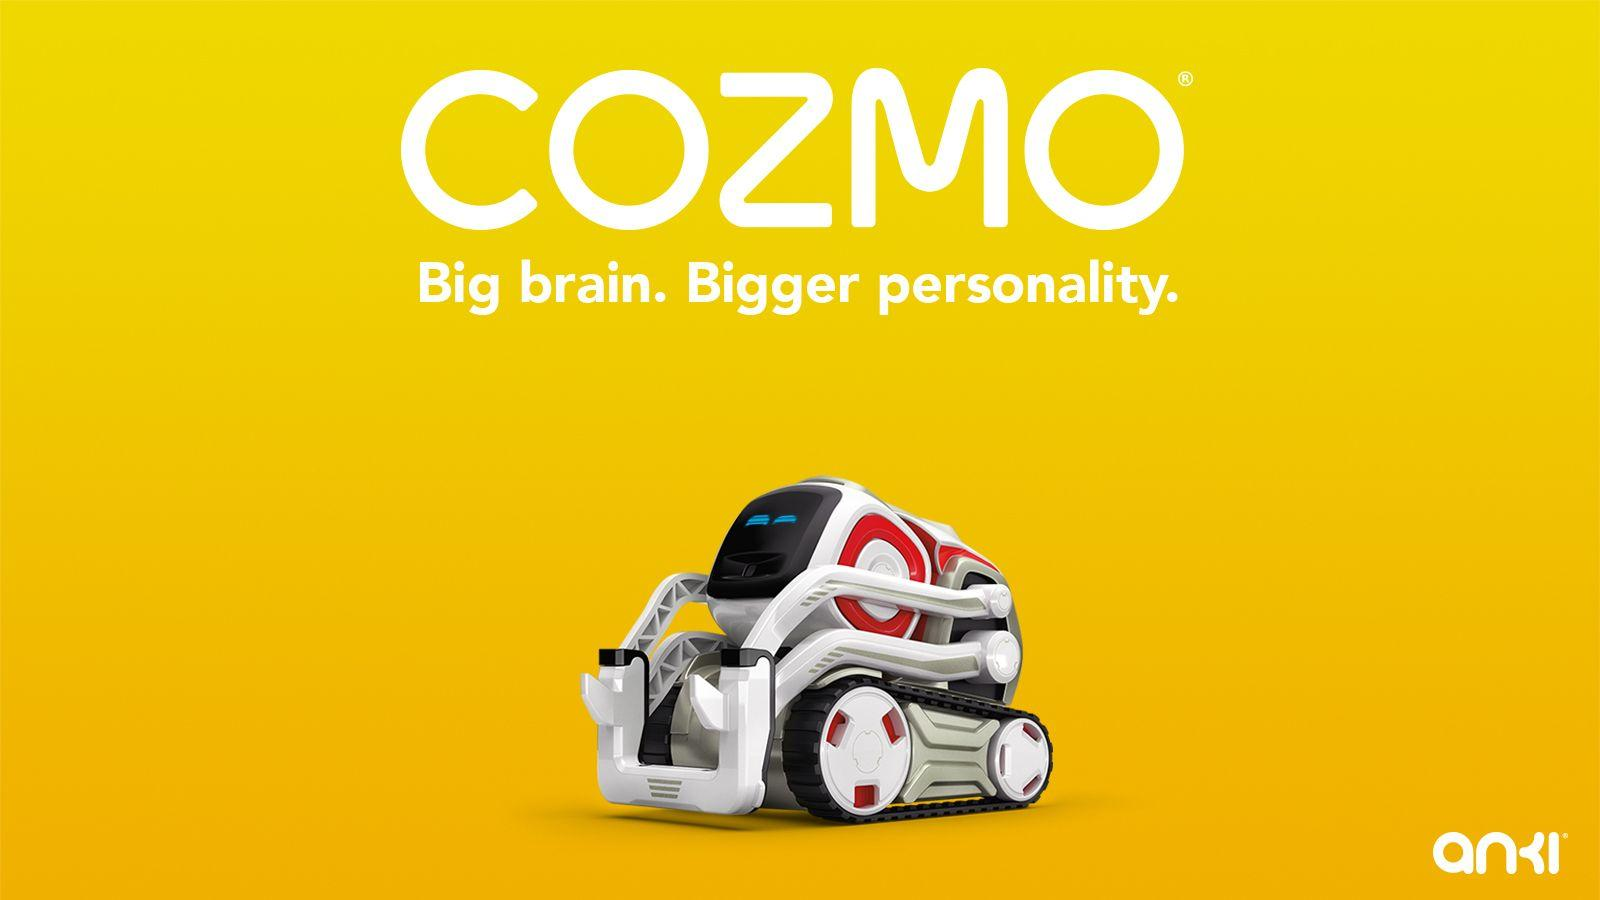 cozmo-hero-render-002